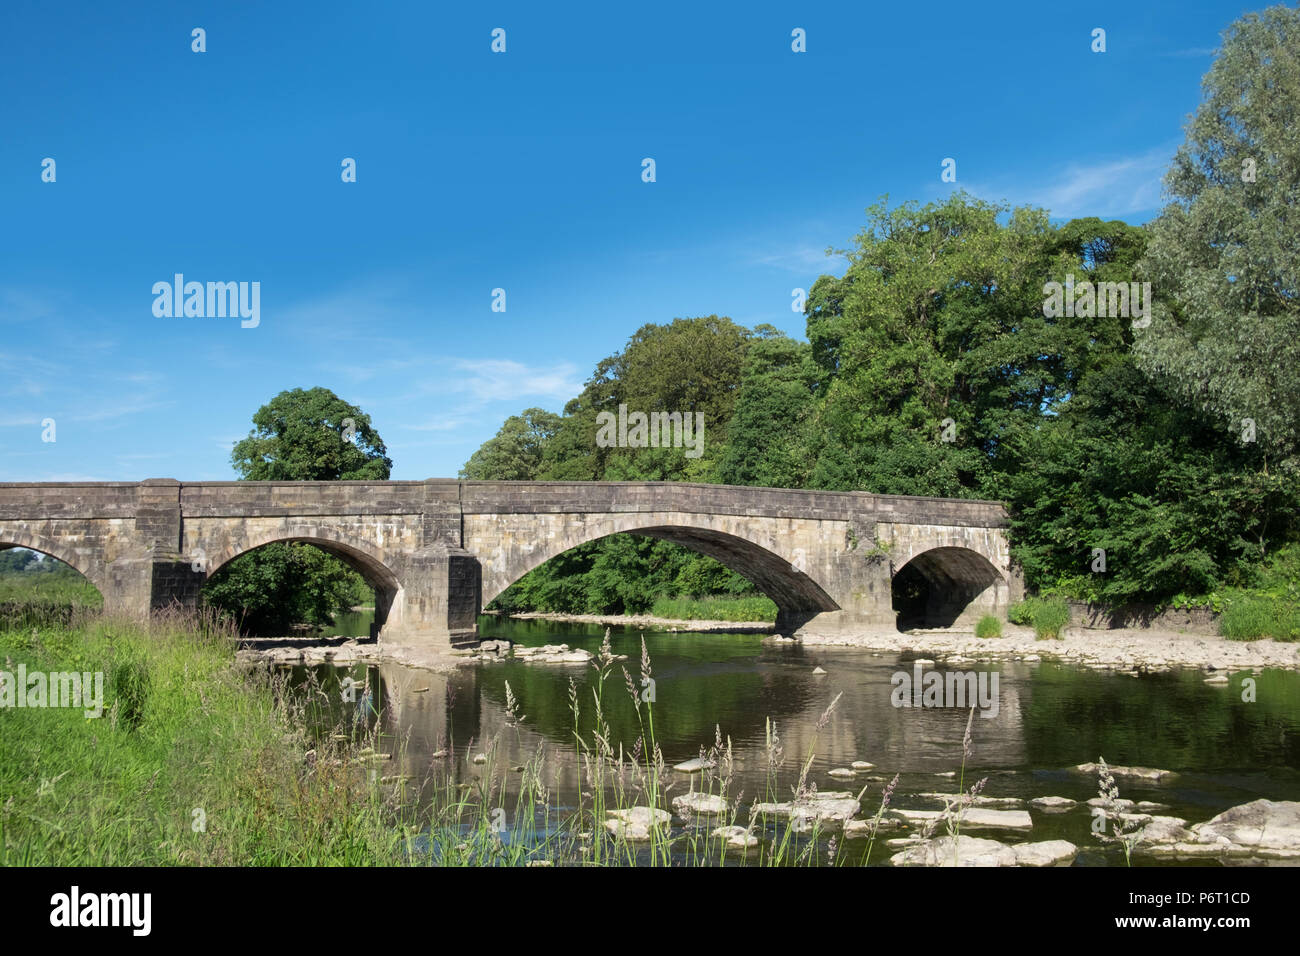 Edisford Bridge, Clitheroe, Lancashire, UK. The bridge is one of the main crossings over the river ribble. - Stock Image